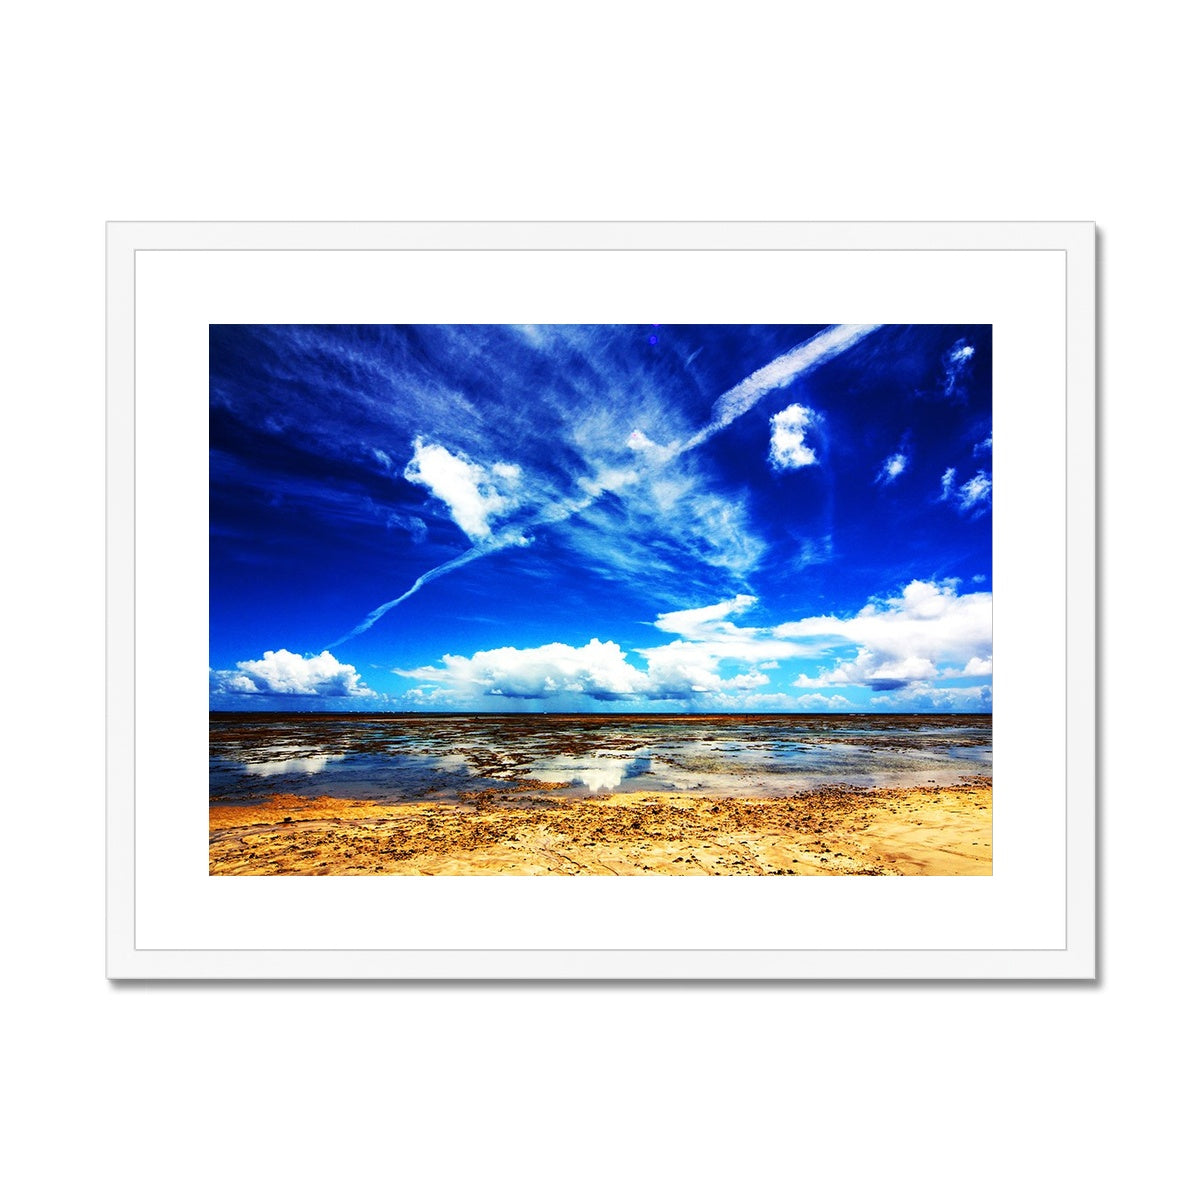 Bahia Electric Aqua Blue II - Brasil - Framed & Mounted Print